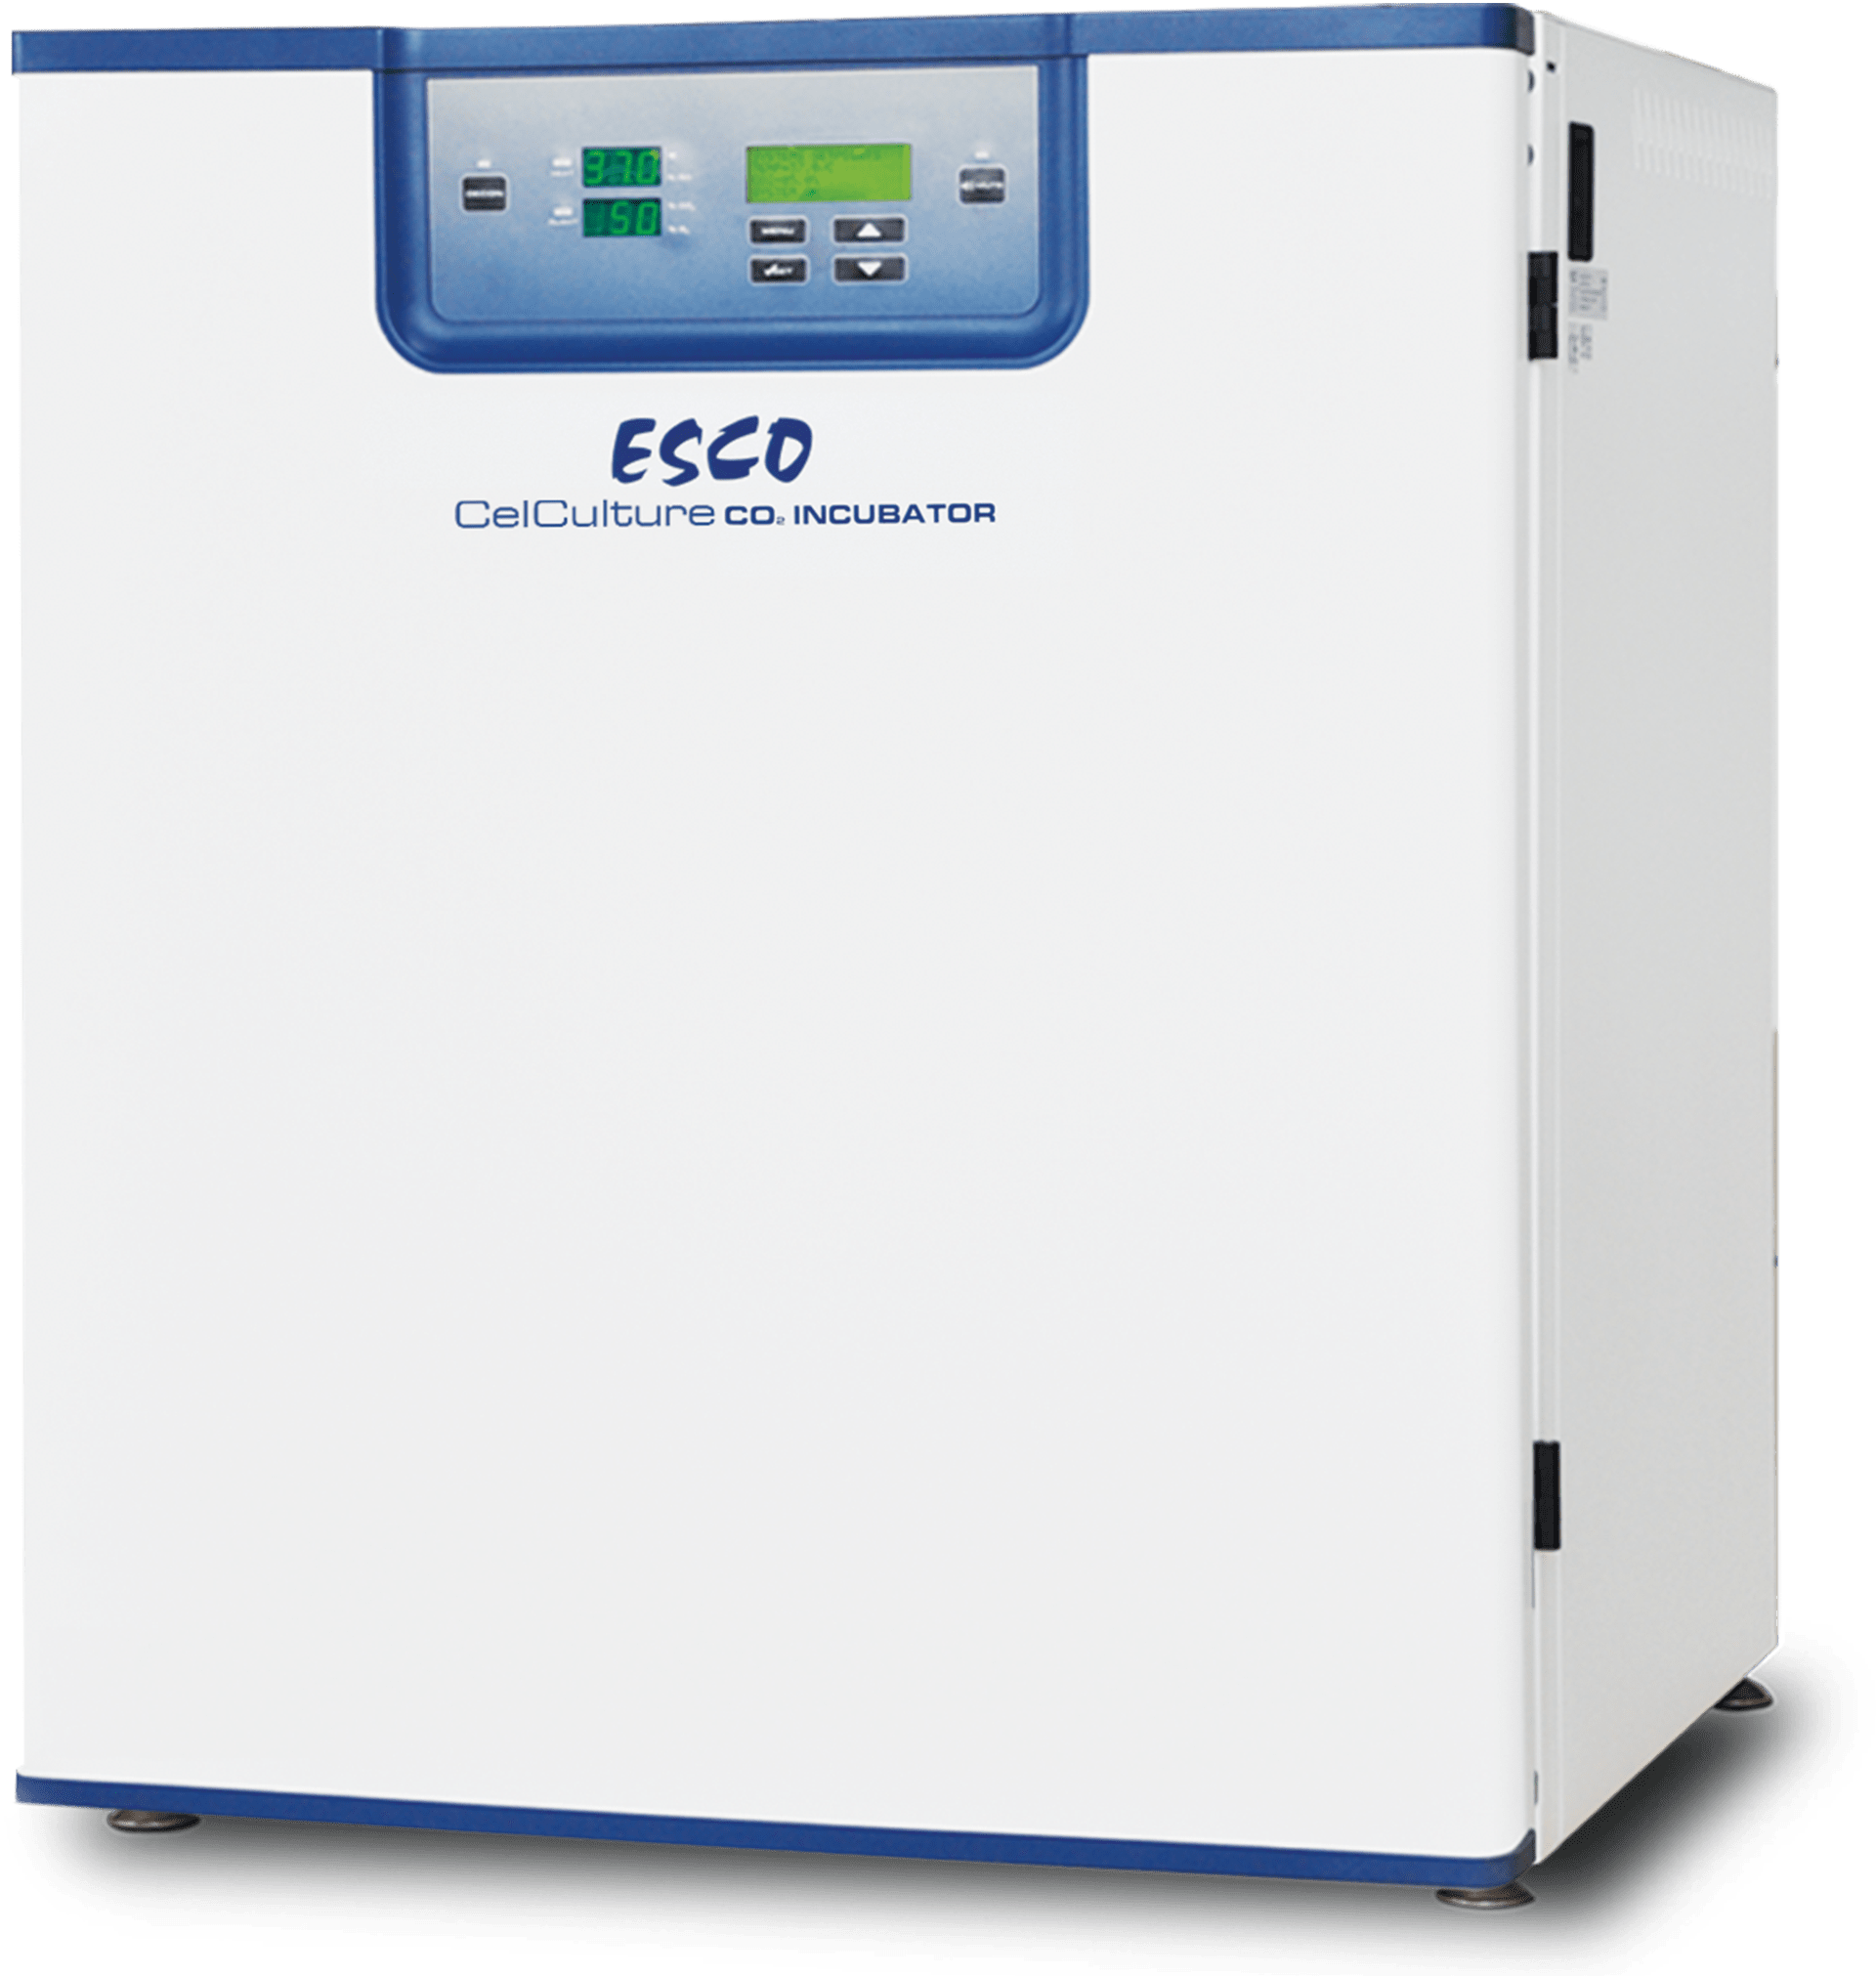 Esco Announces CO2 Incubator Beta Test Program